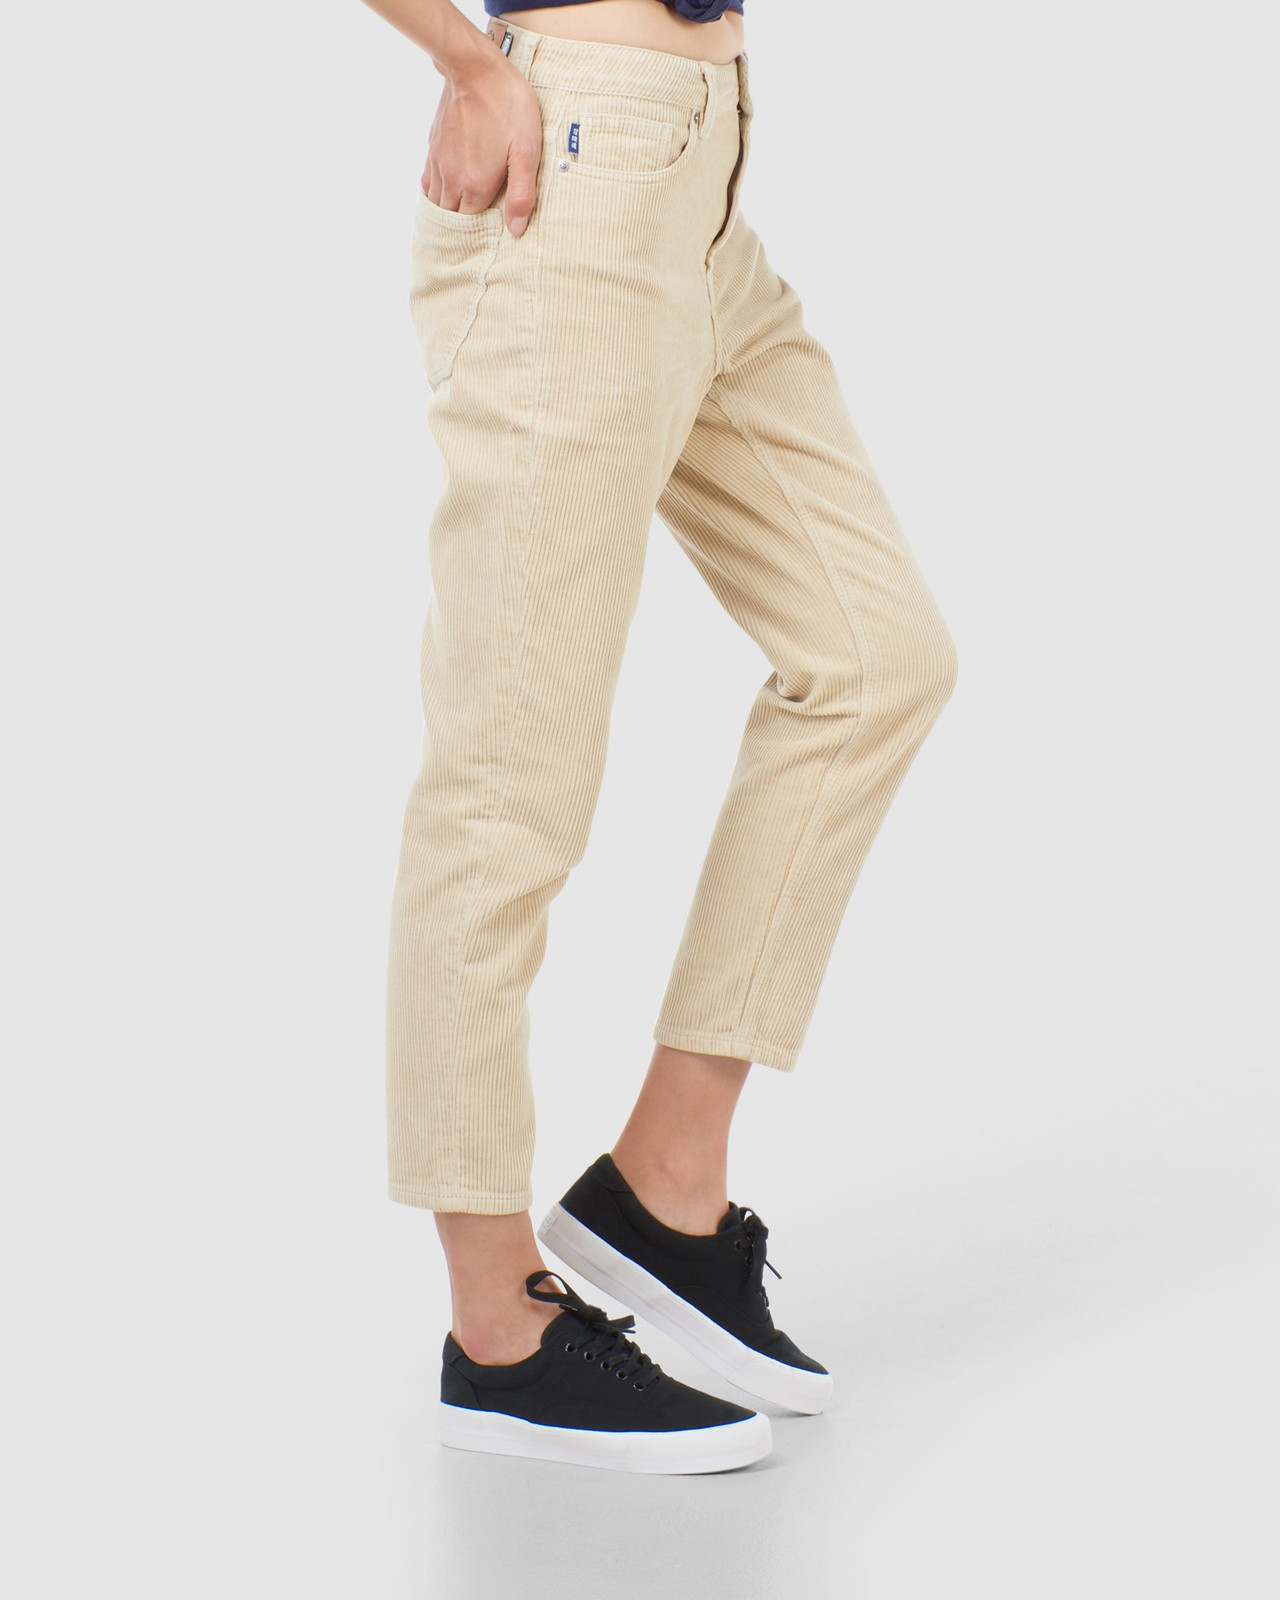 Superdry Womens HIGH SLIM TAPER CORD Neutrals Casual Pants 2